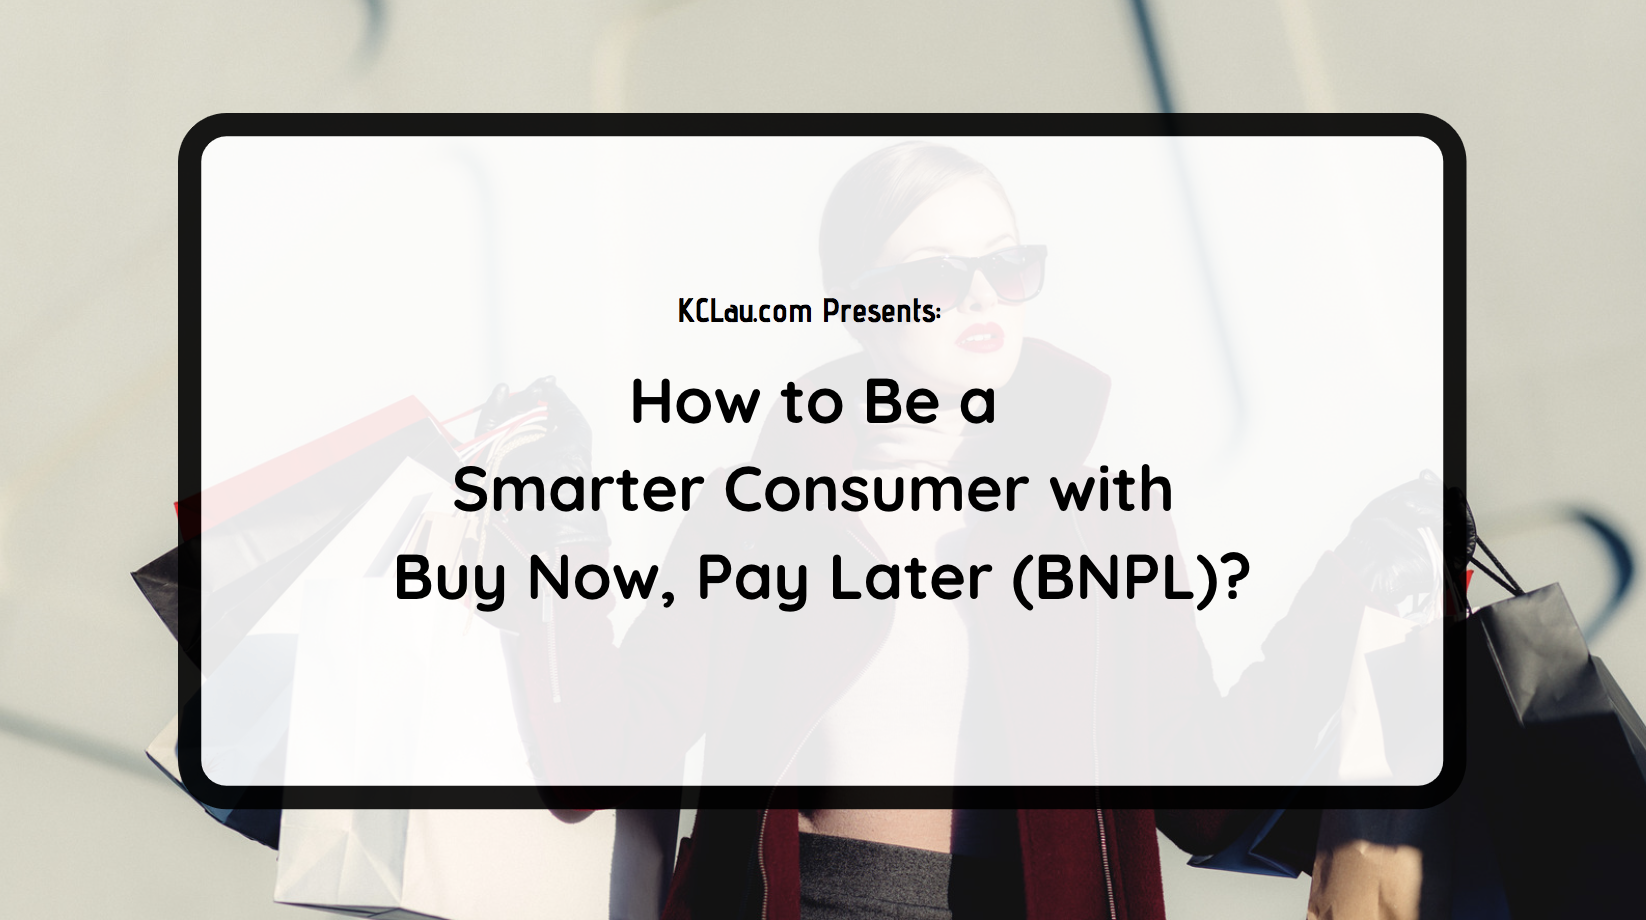 How to Be a Smarter Consumer with Buy Now, Pay Later (BNPL)?